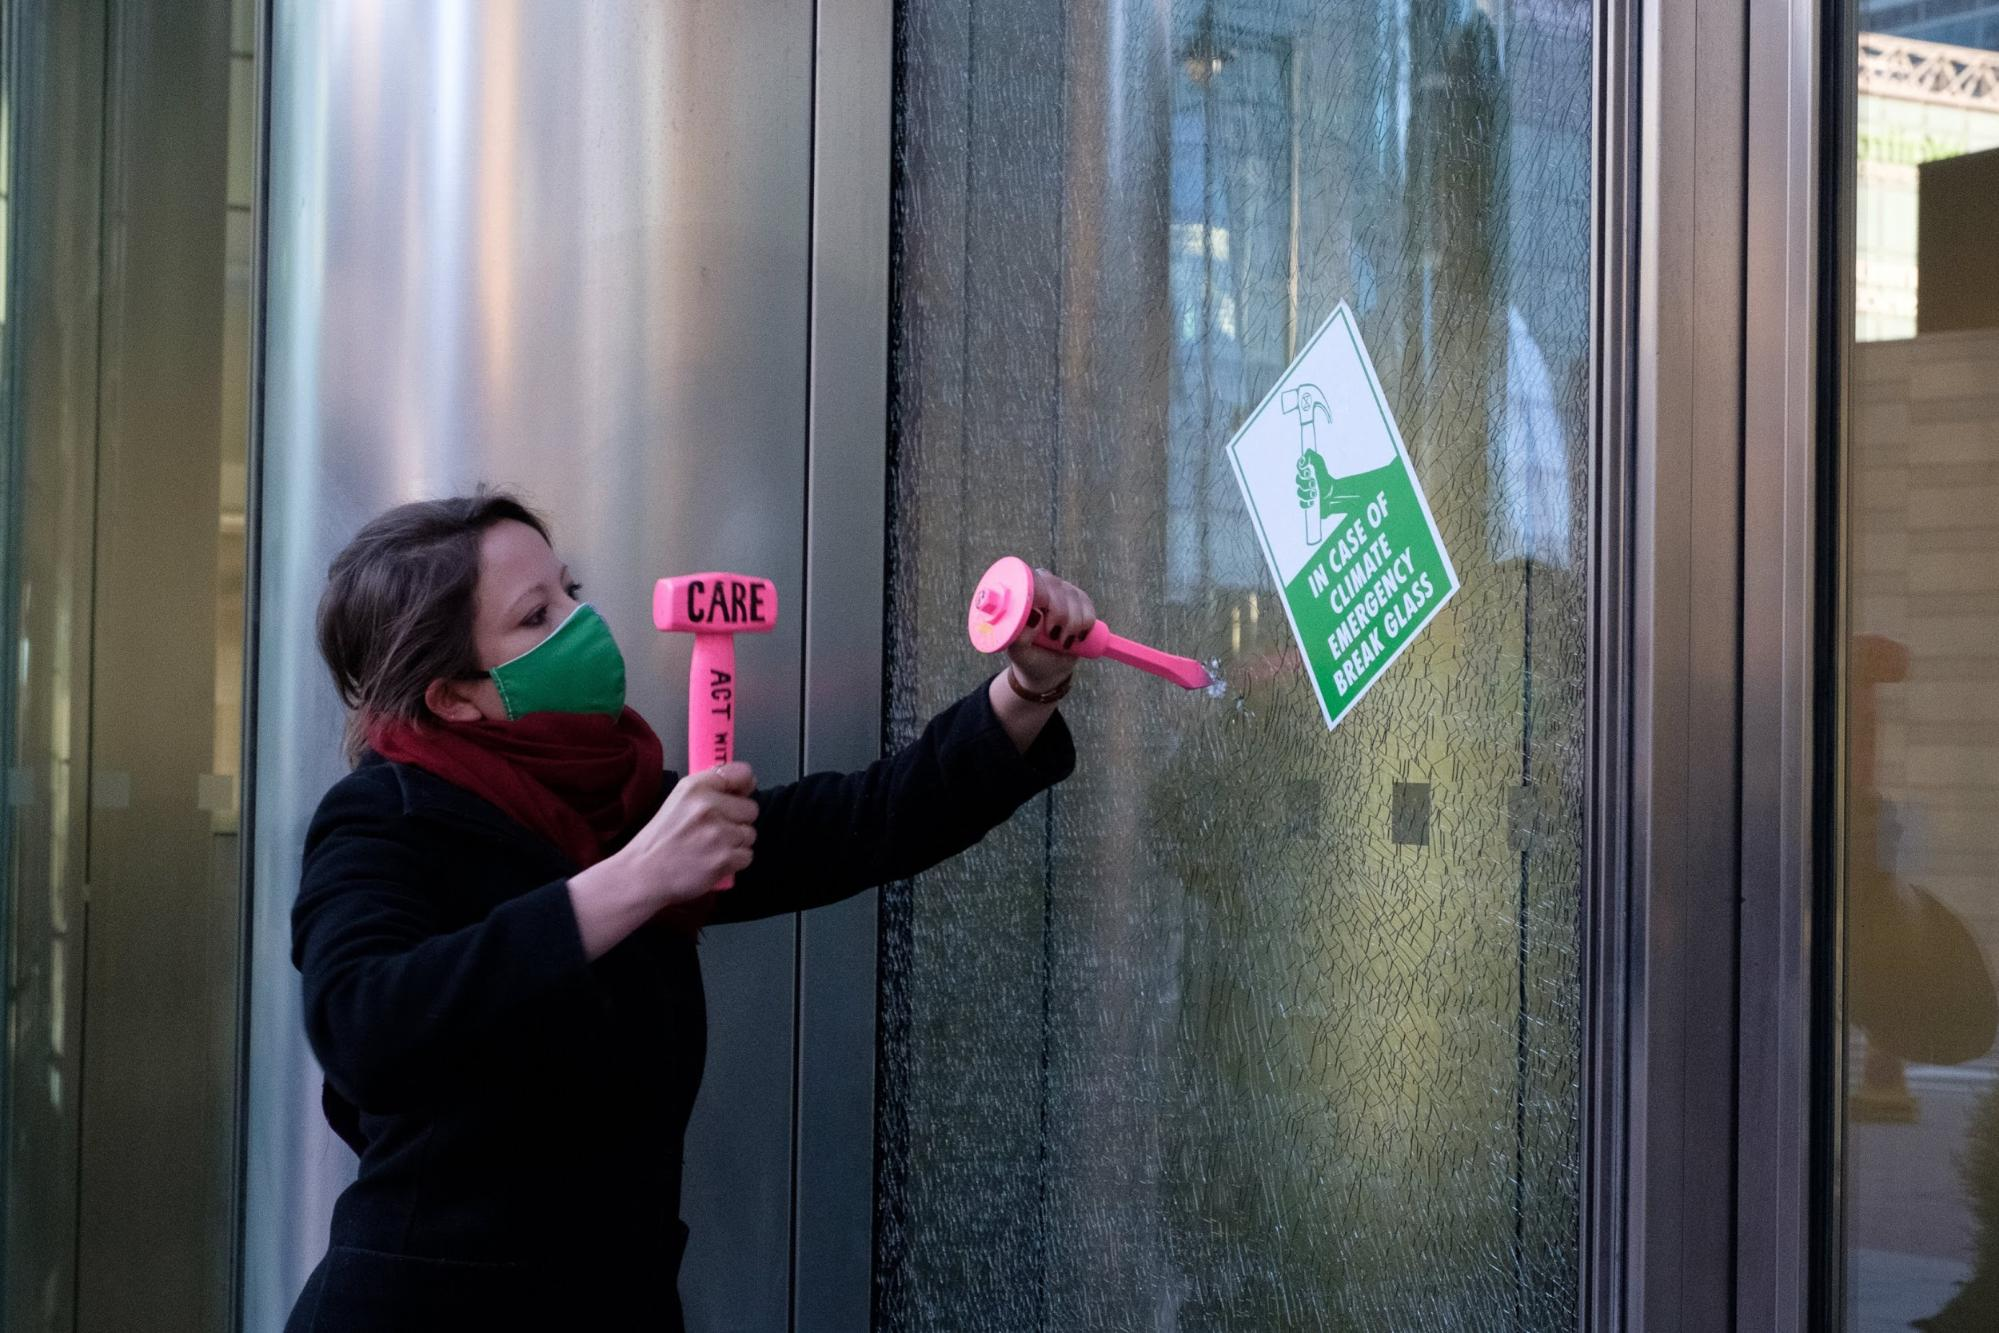 London, UK. 7 women rebels break windows of Barclays HQ, the 7th dirtiest bank, inspired by the suffragettes who broke windows in their fight to win women the vote.